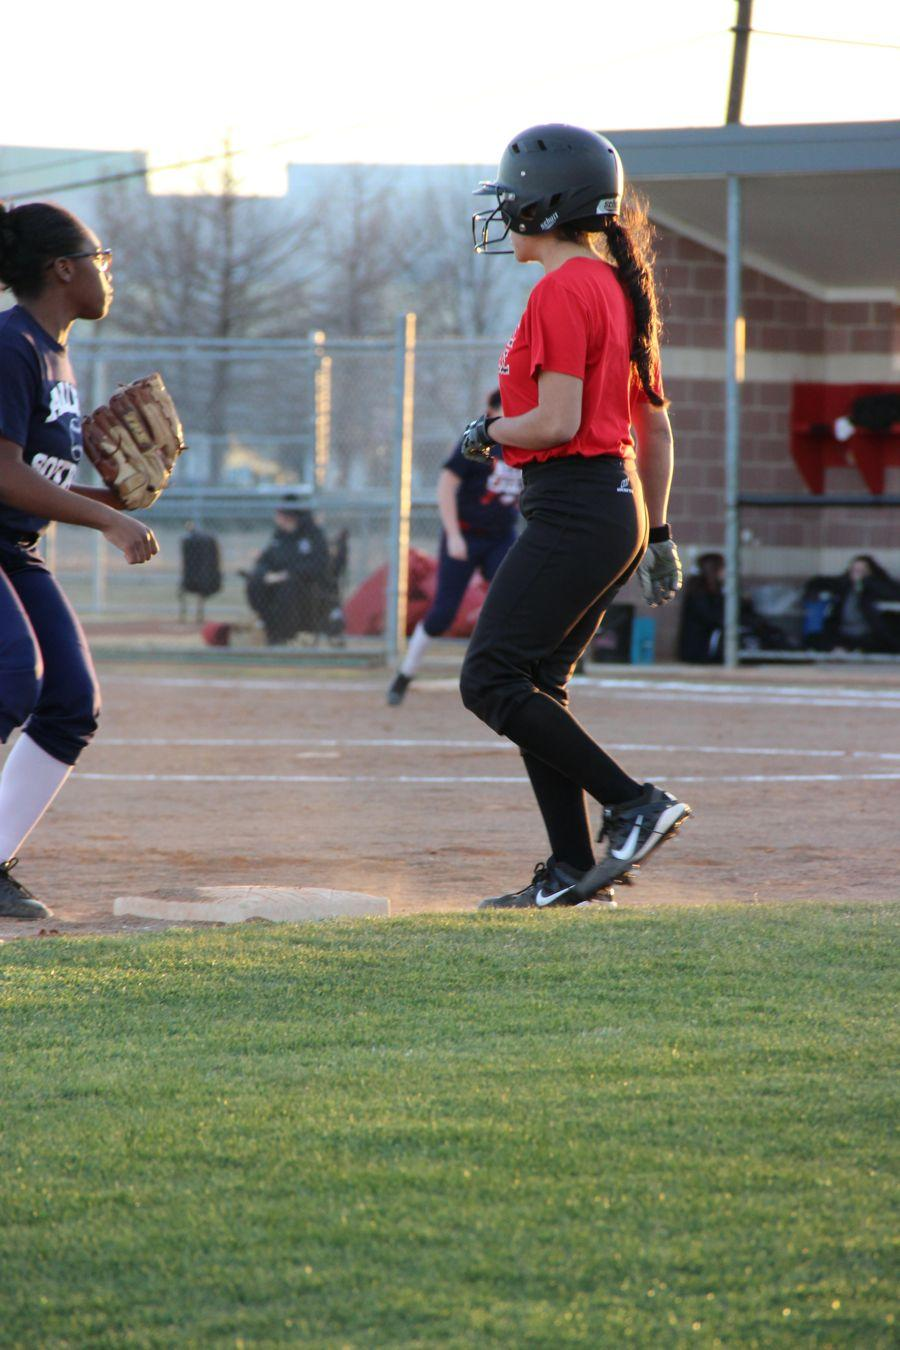 Coppell+High+School+sophomore+Lusia+Holguin+runs+to+first+base+after+batting+during+the+second+inning+on+Monday.+Coppell+JV+II+scrimmaged+against+Allen+at+the+Coppell+ISD+baseball%2Fsoftball+complex.%0A